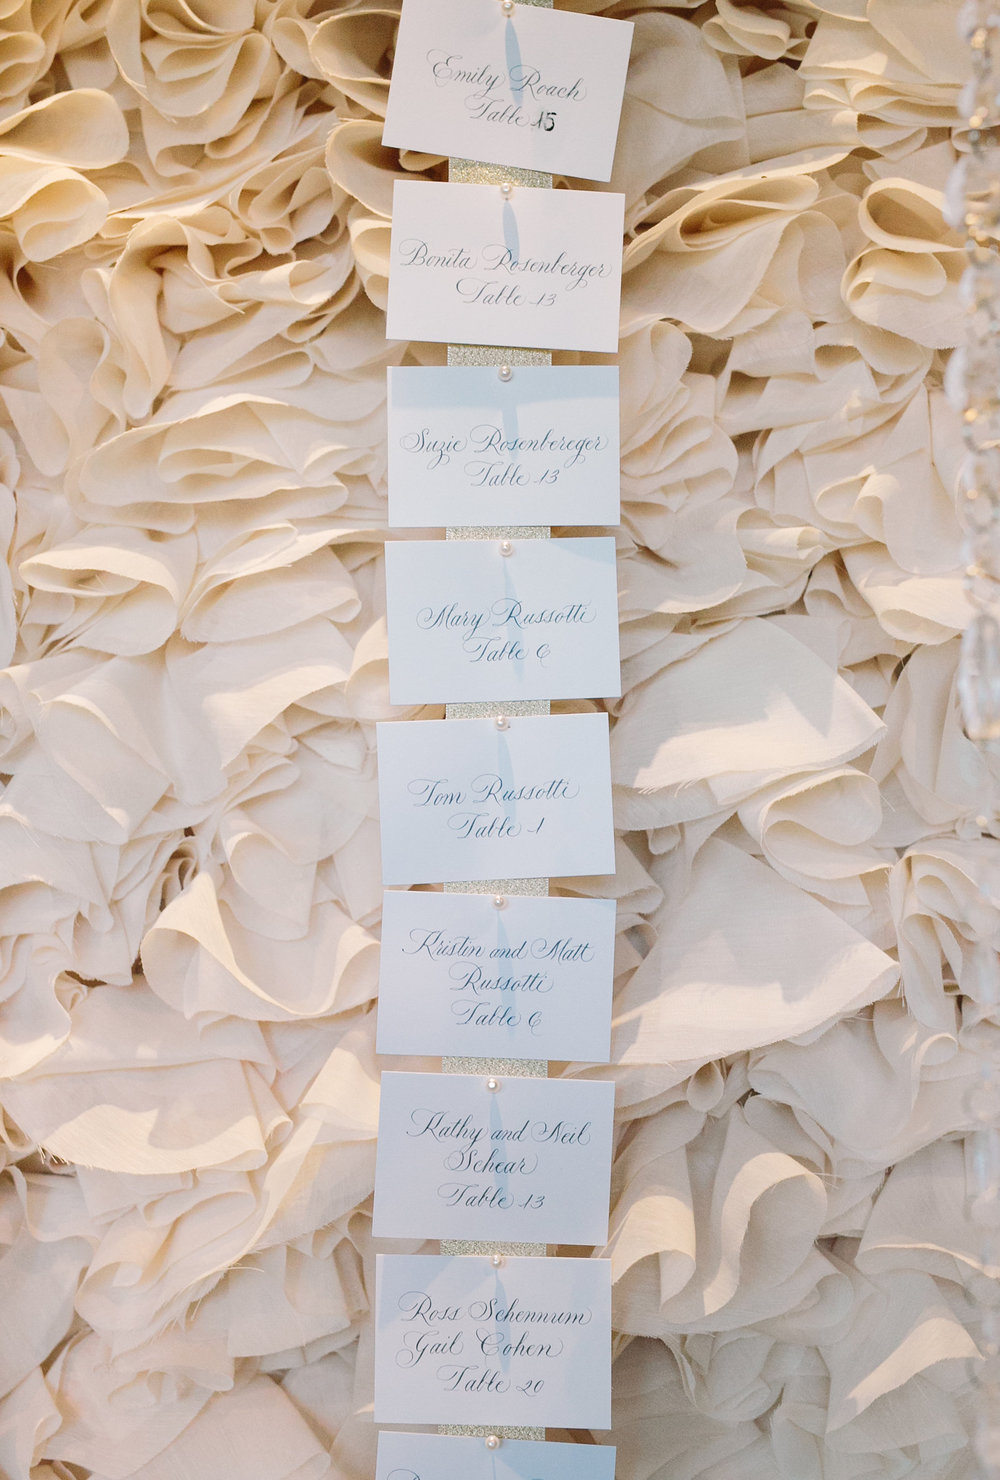 Sea Pines wedding at 18th Lawn of Harbour Town of Golf LInks in HIlton Head, South Carolina